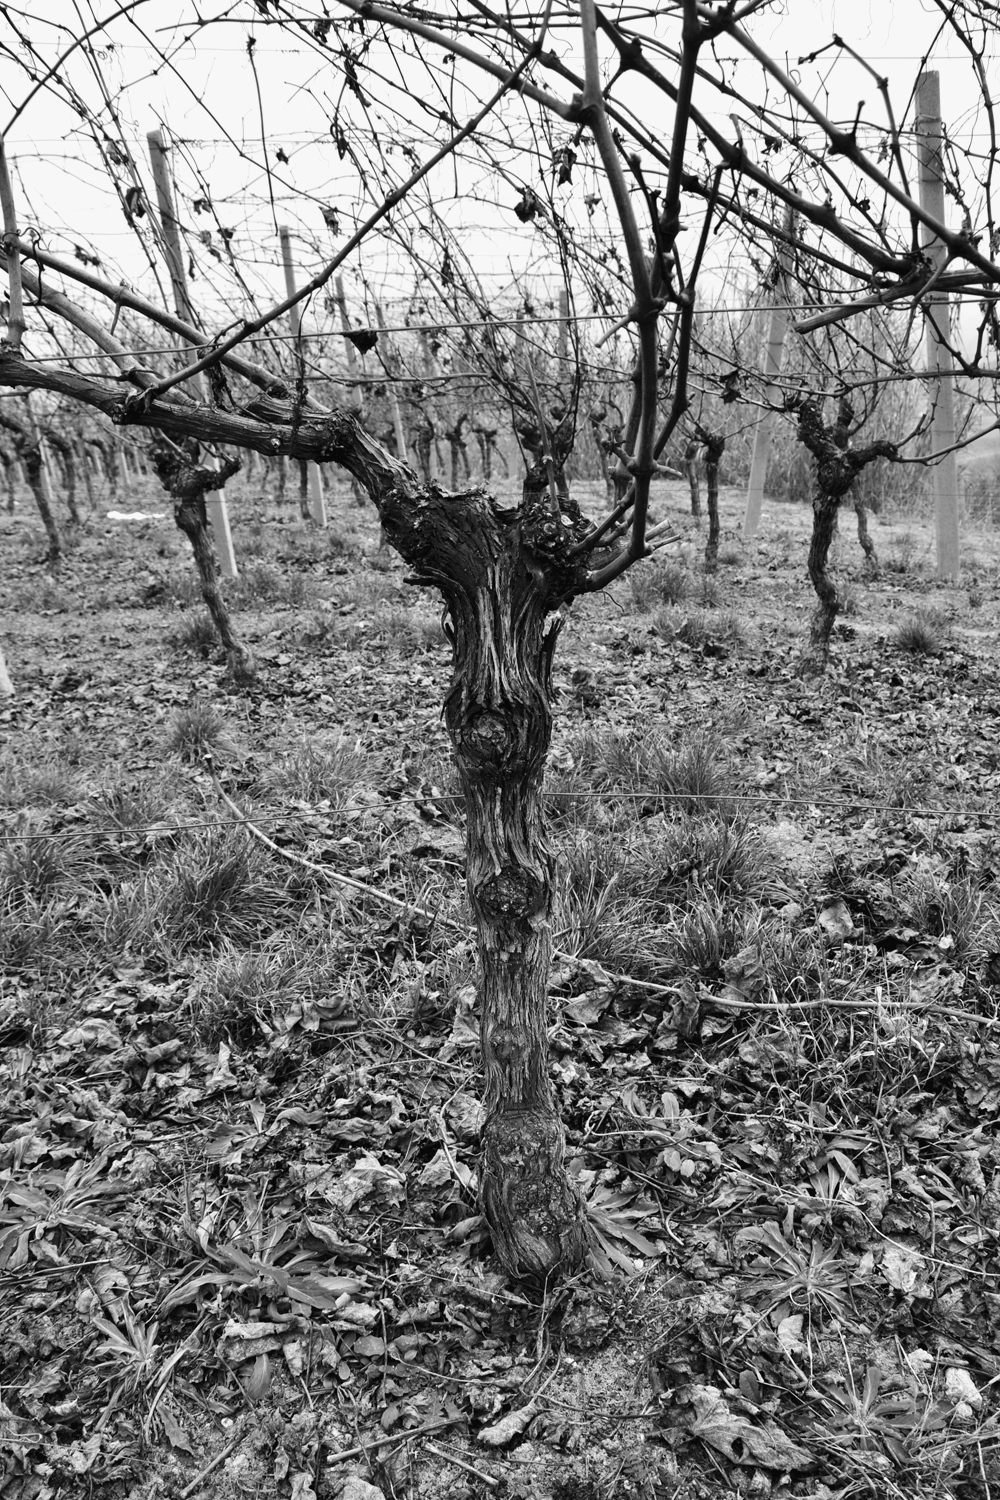 BARBERA: 26% - DOC Alto Monferrato • Tuff & marl layers • Slight slope • North-East facing • Green • Pruning style: Guyot • 25 years old • 6000kg/ha